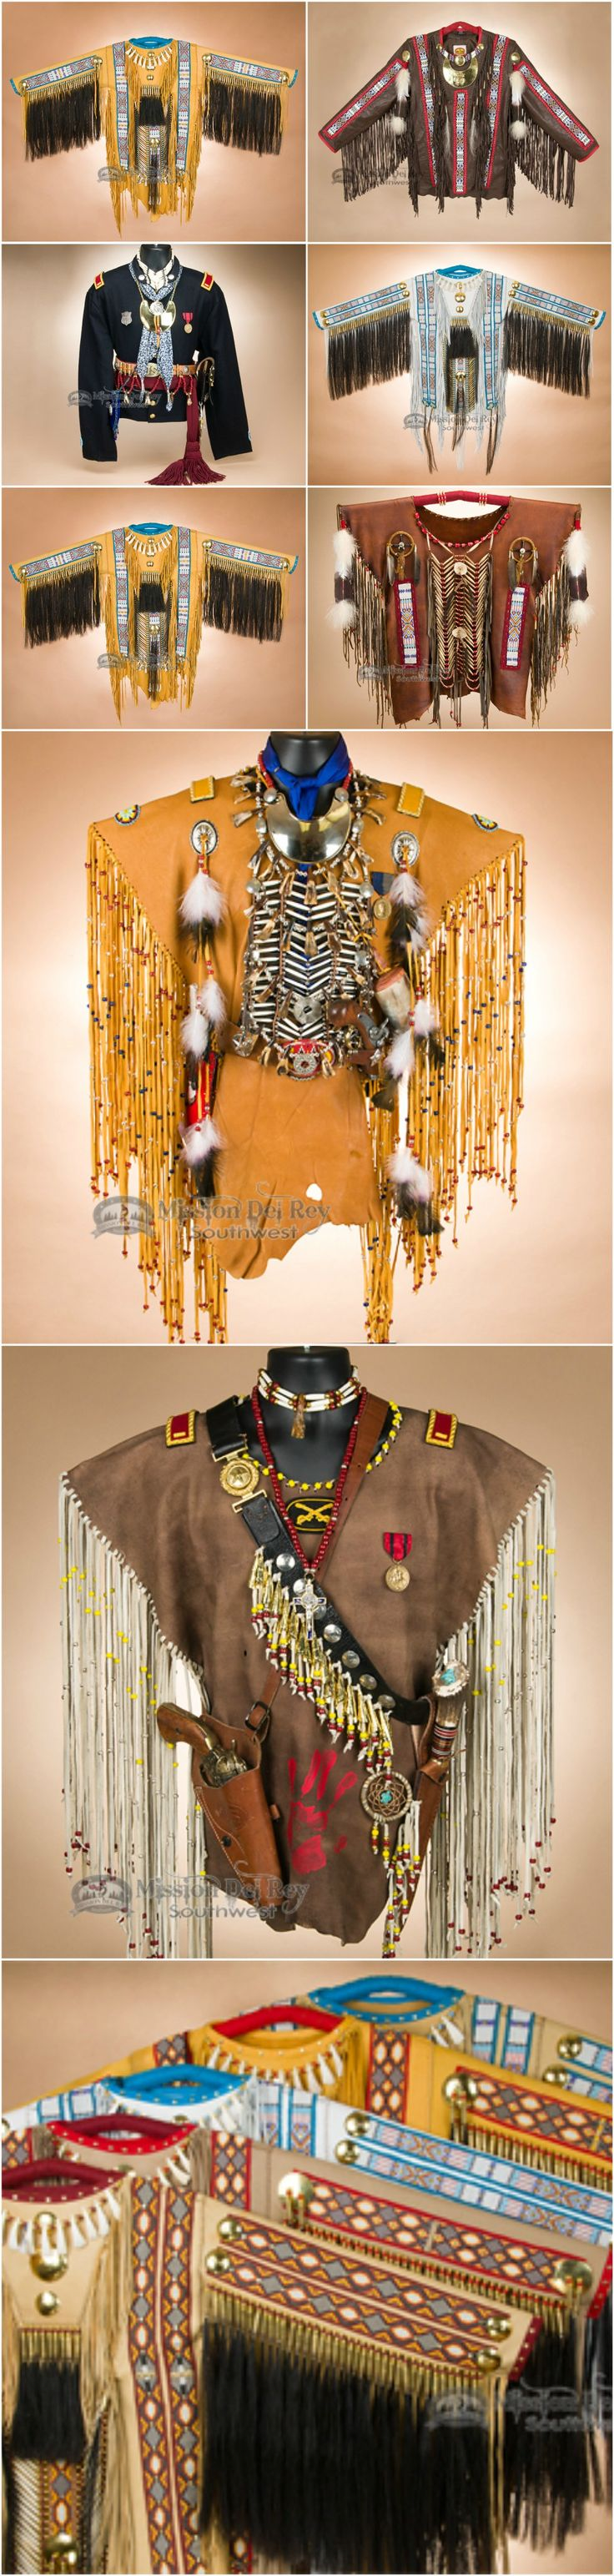 17 best ideas about native american costumes on pinterest for American indian decoration